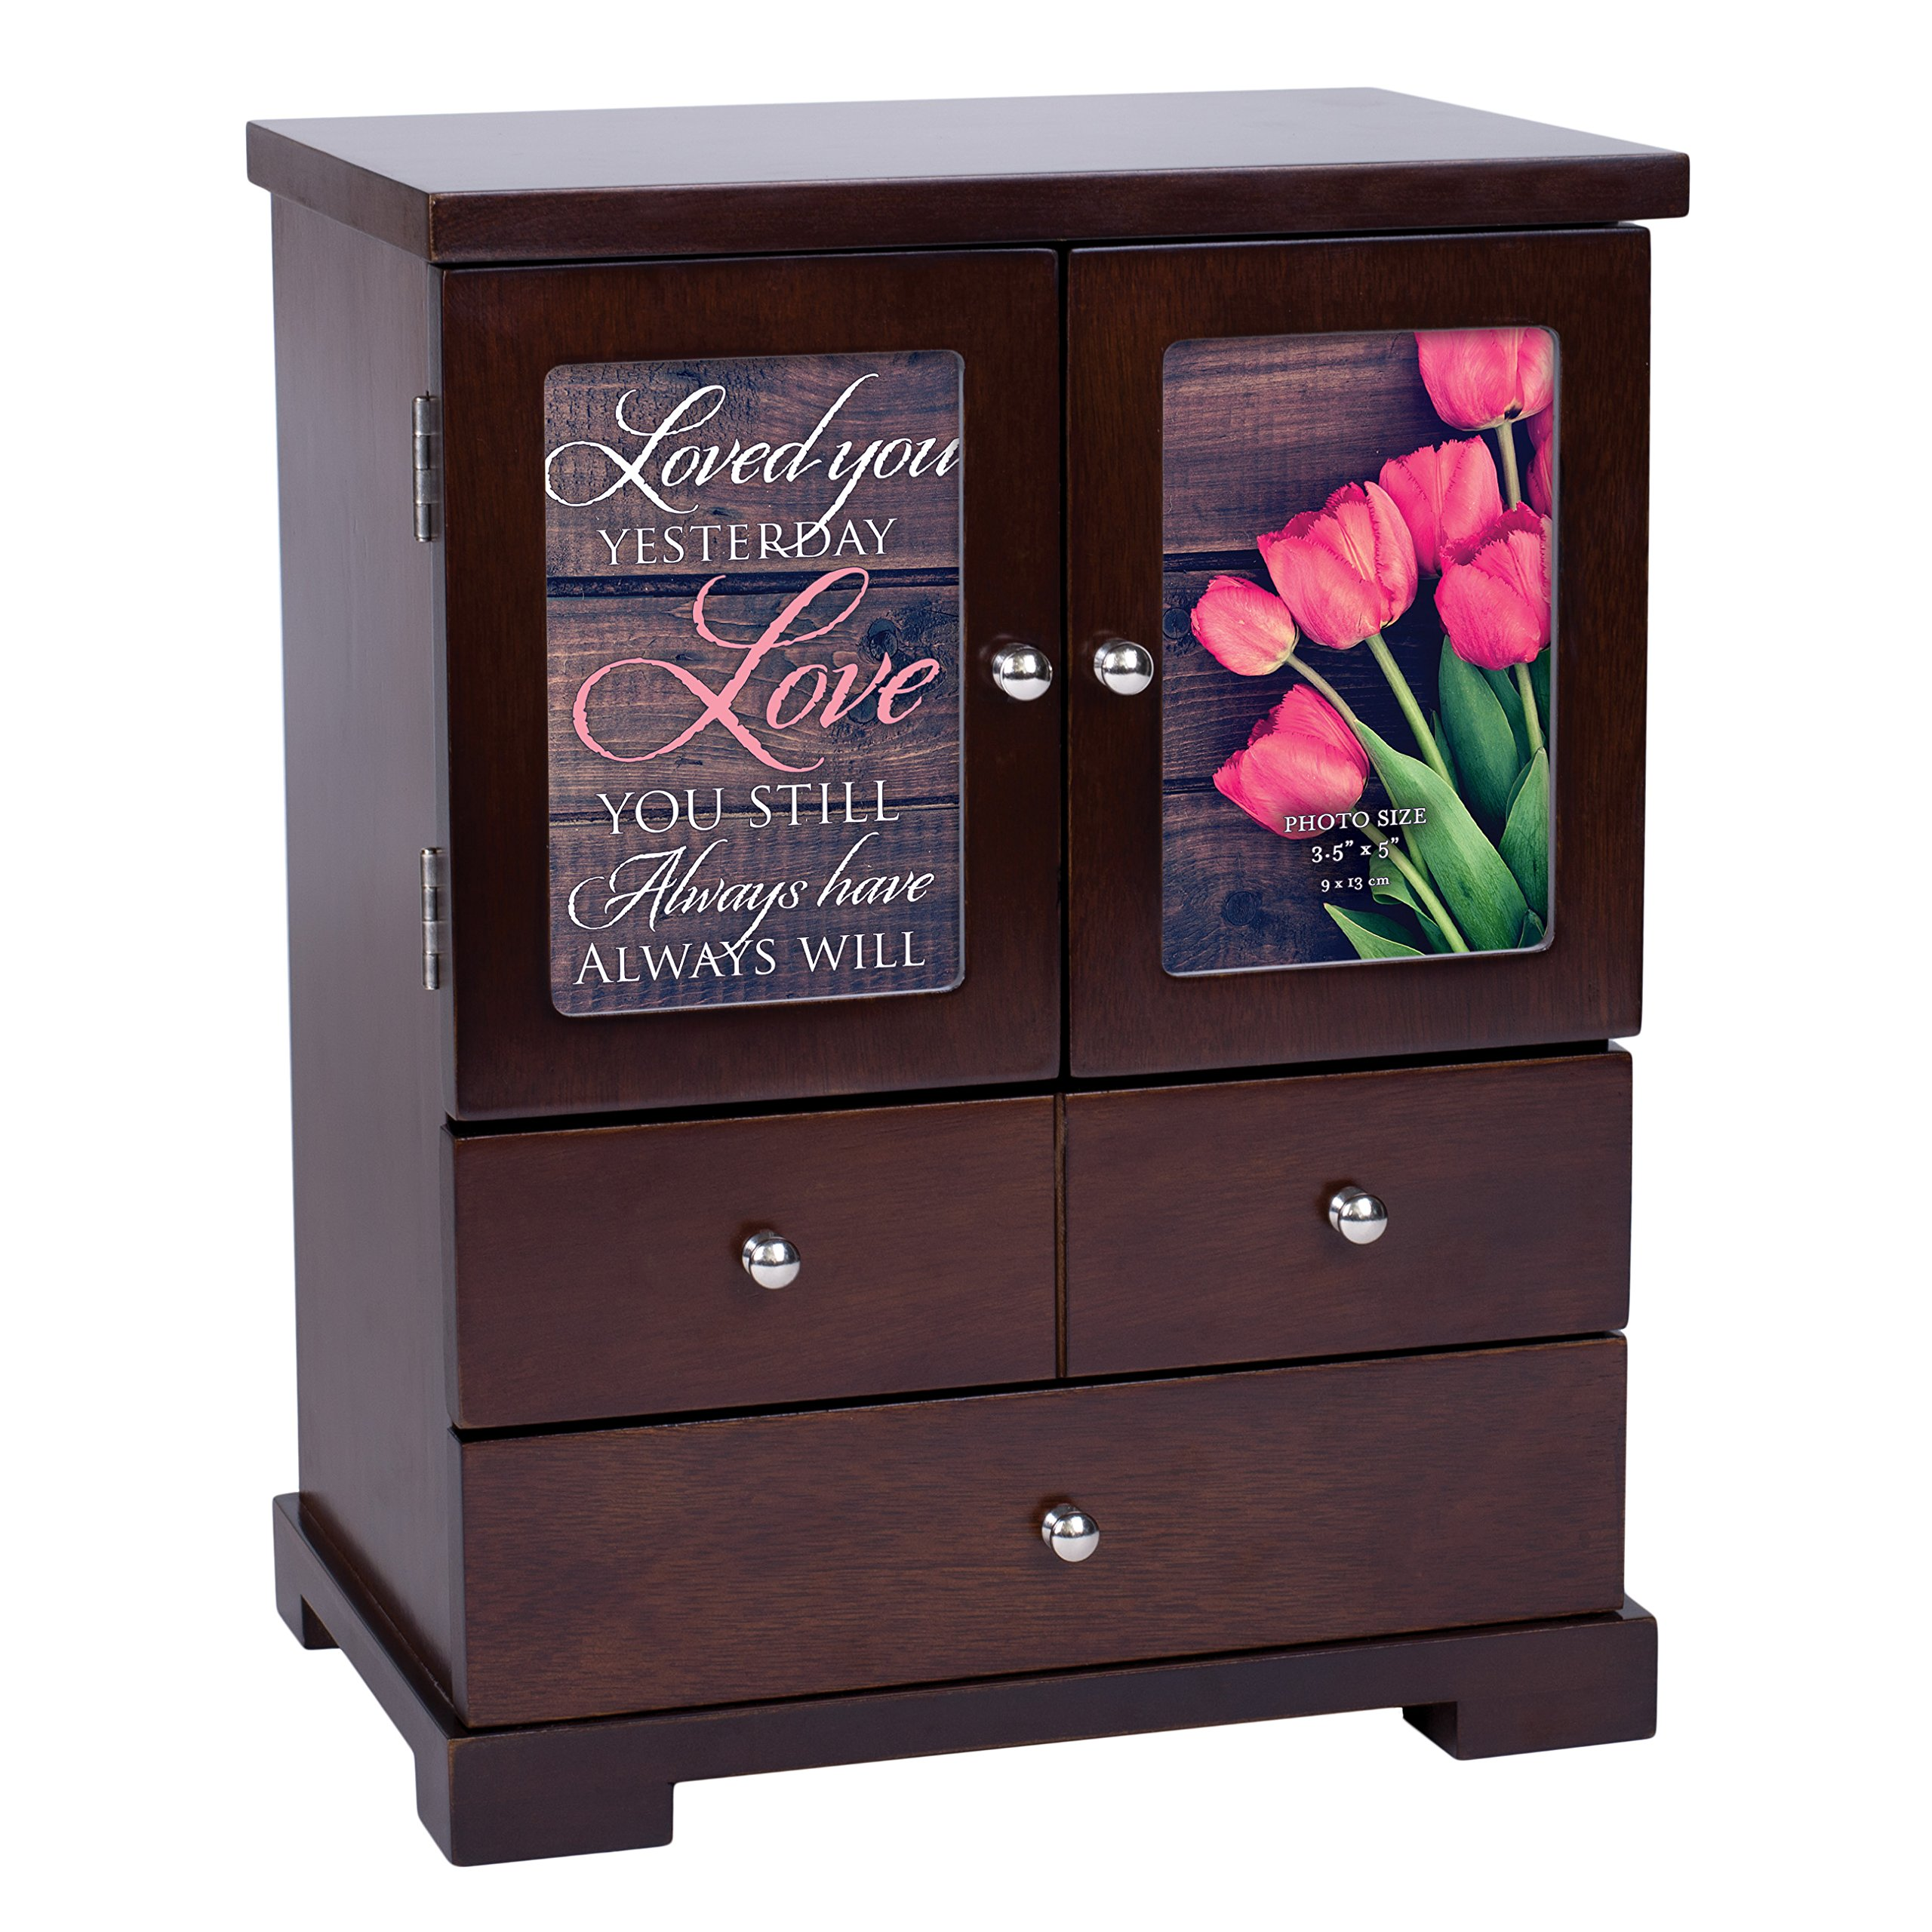 Elanze Designs Love You Still Always Will 12 x 10 Walnut Wood Finish Jewelry Armoire